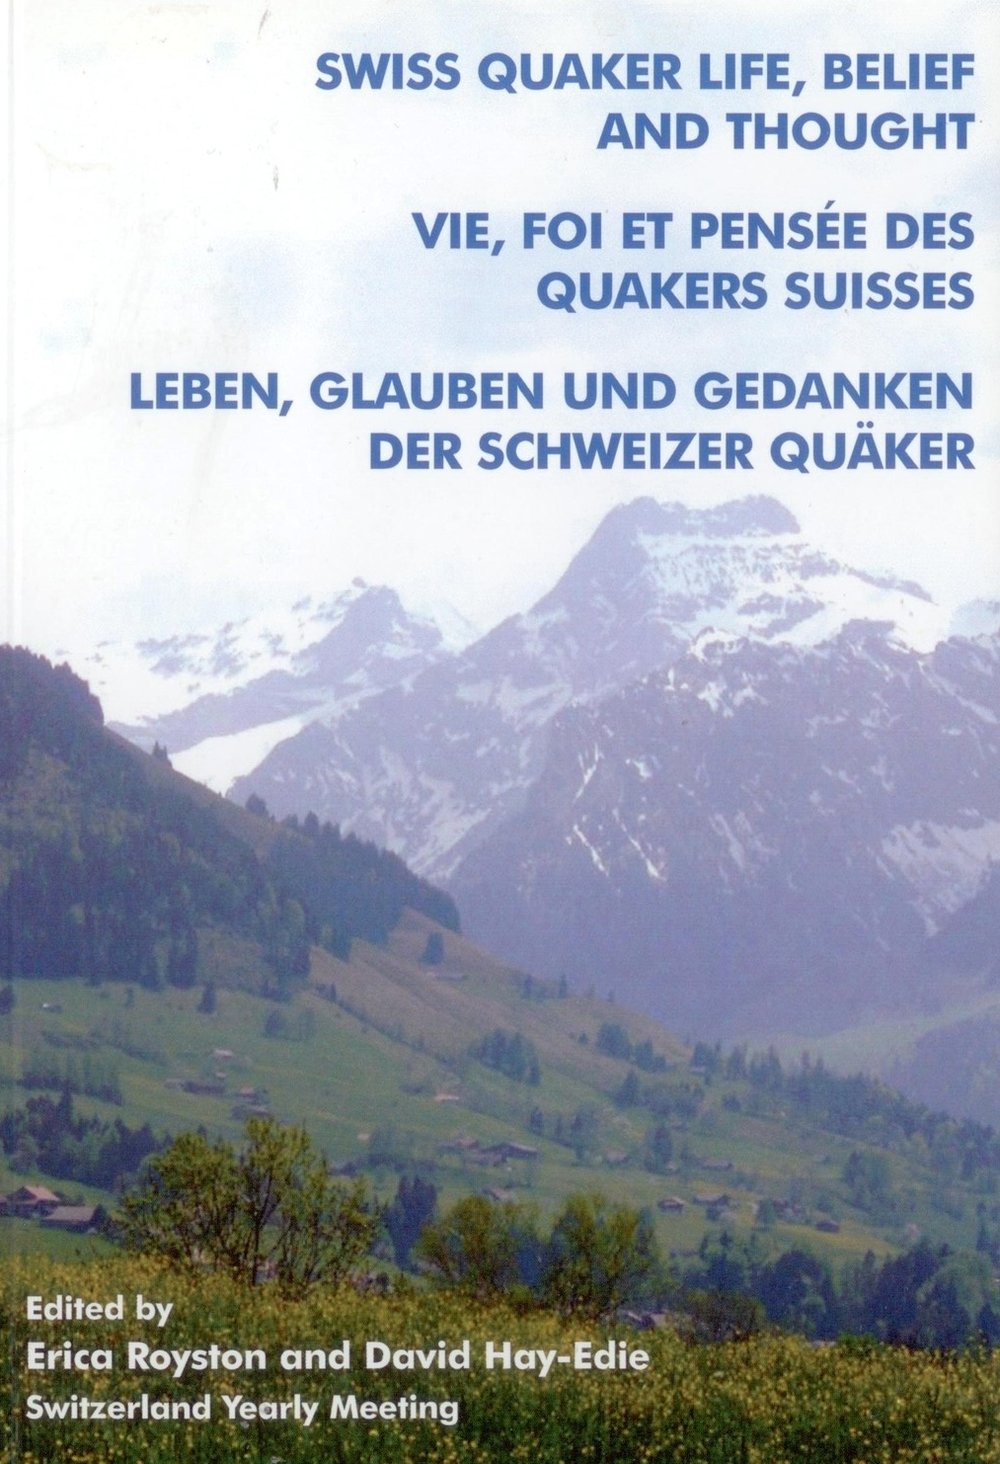 For addresses in Switzerland, available directly from  bookorder@swiss-quakers.ch    Price SFr.12 plus SFr.2 postage.   Quaker Bookstores